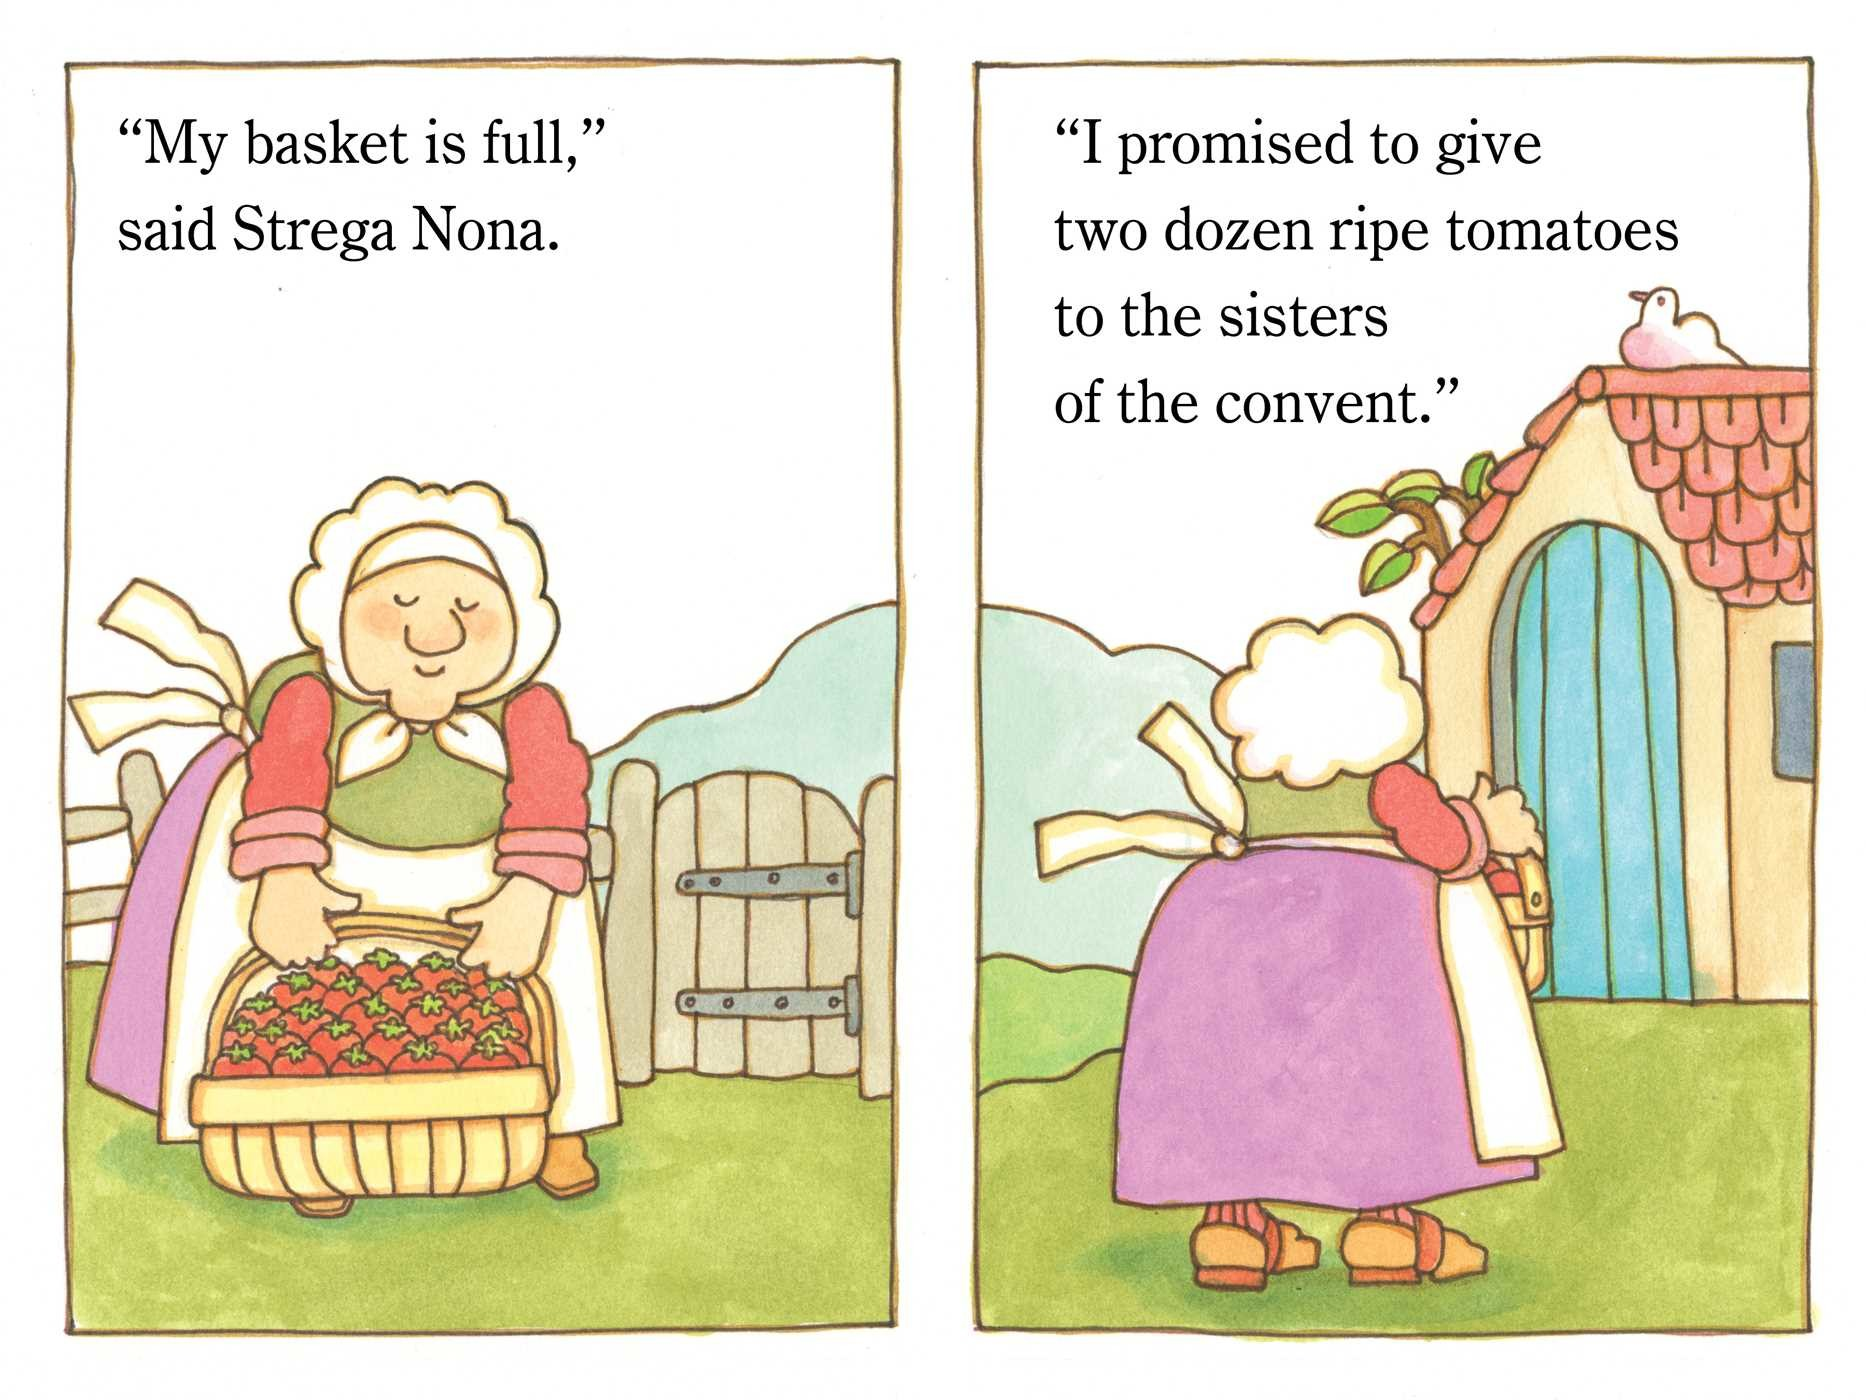 Strega nona and her tomatoes 9781481481342.in03